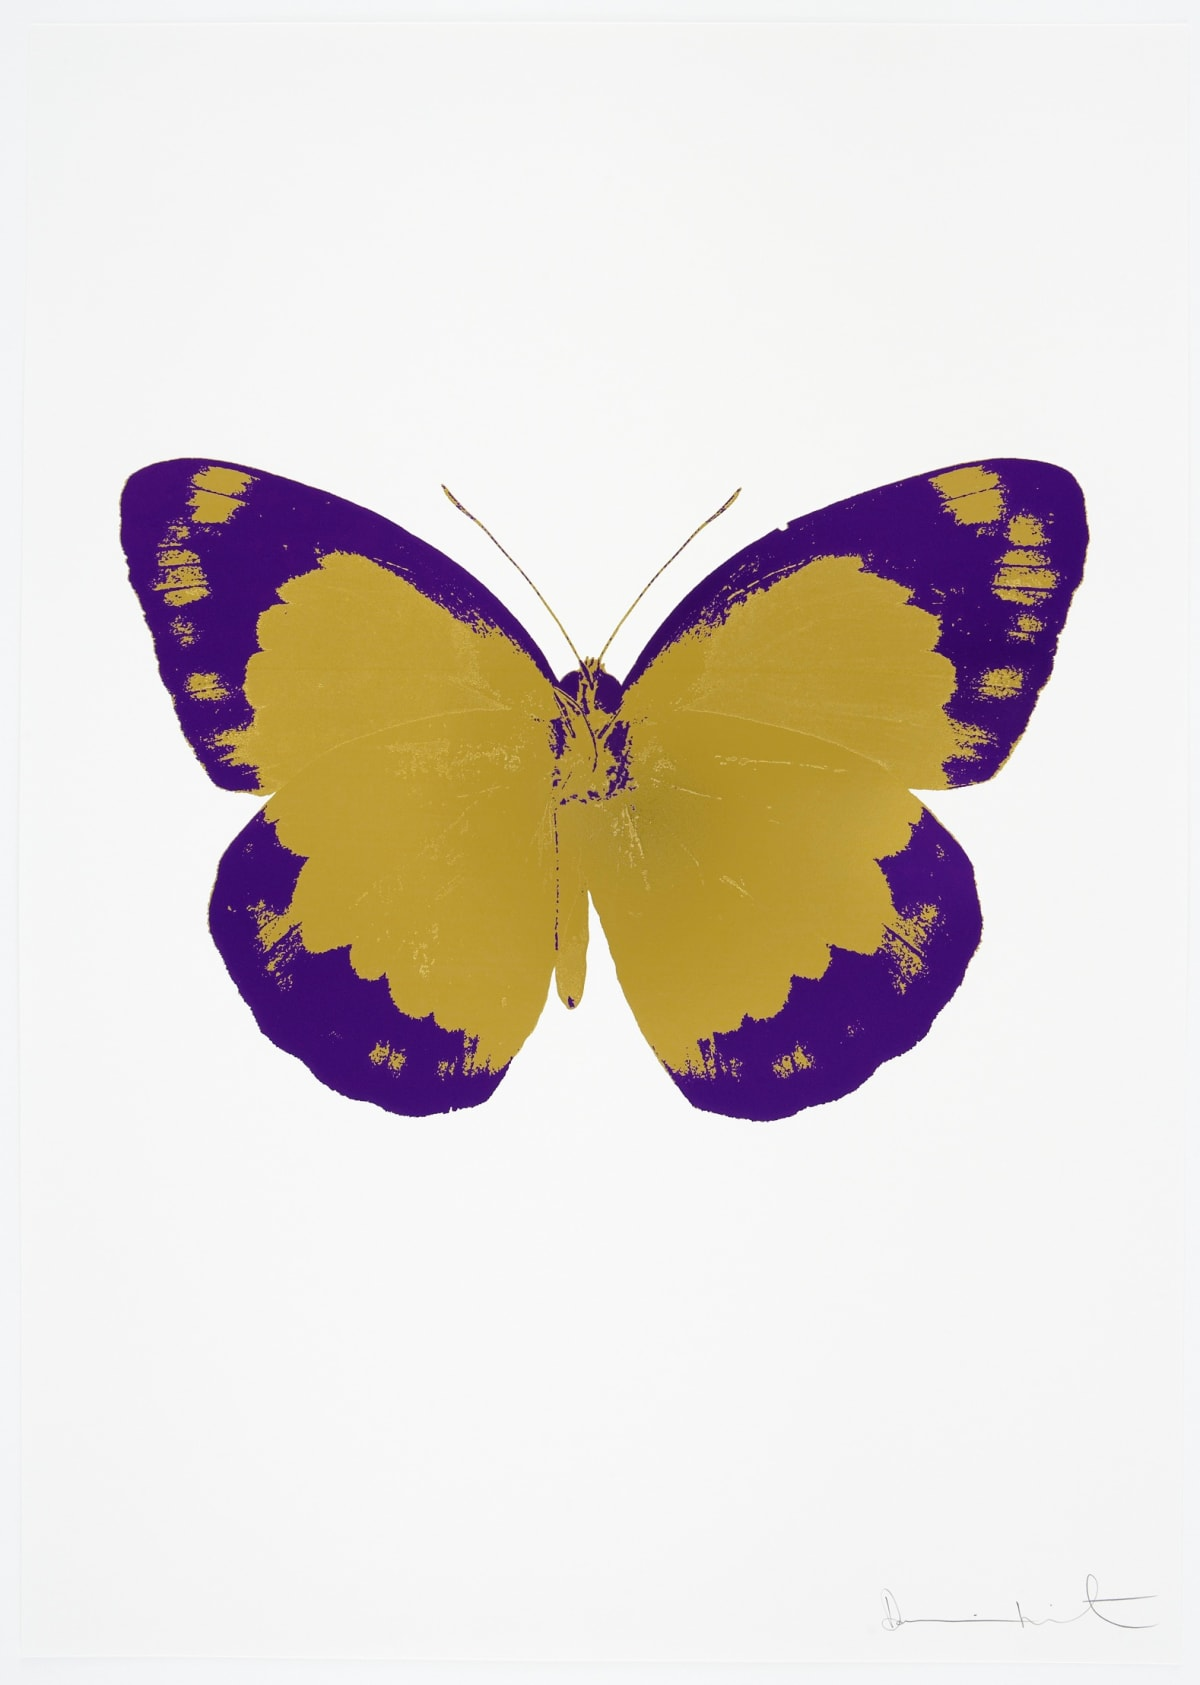 Damien Hirst The Souls II - Oriental Gold/Imperial Purple/Blind Impression, 2010 2 colour foil block on 300gsm Arches 88 archival paper. Signed and numbered. Published by Paul Stolper and Other Criteria 72 x 51cm OC7852 / 658-35 Edition of 15